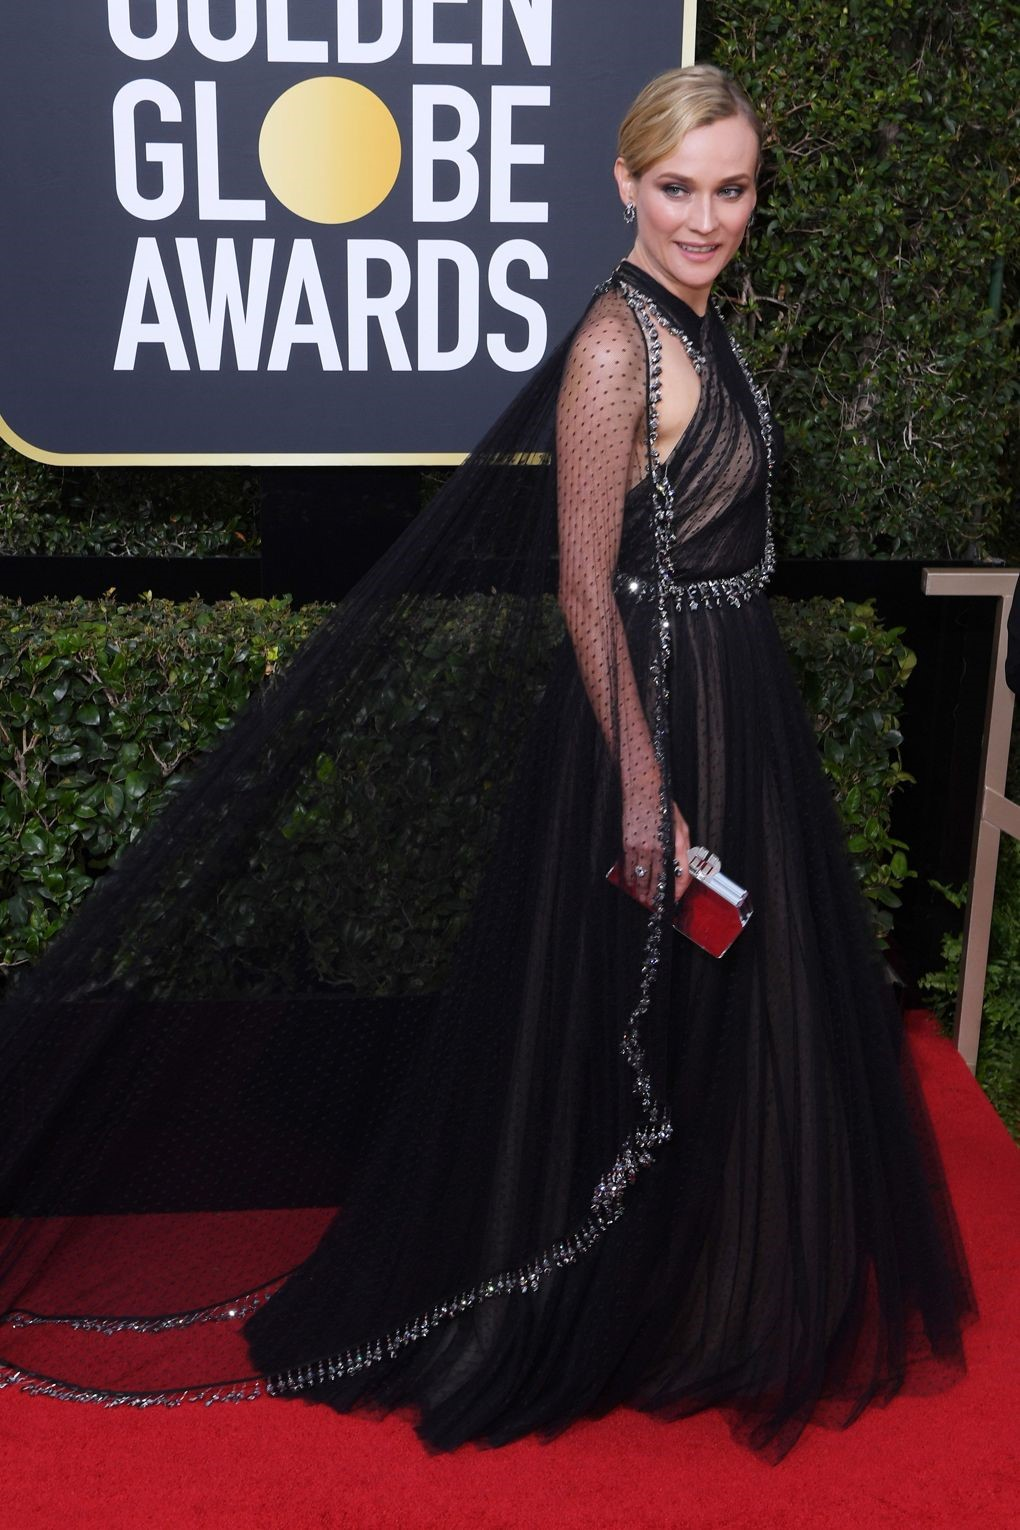 Diana Kruger stood out in Prada Gown making her look like the queen of the red carpet. golden globes 2018 - 11 - JD's top 13 red carpet looks of Golden Globes 2018